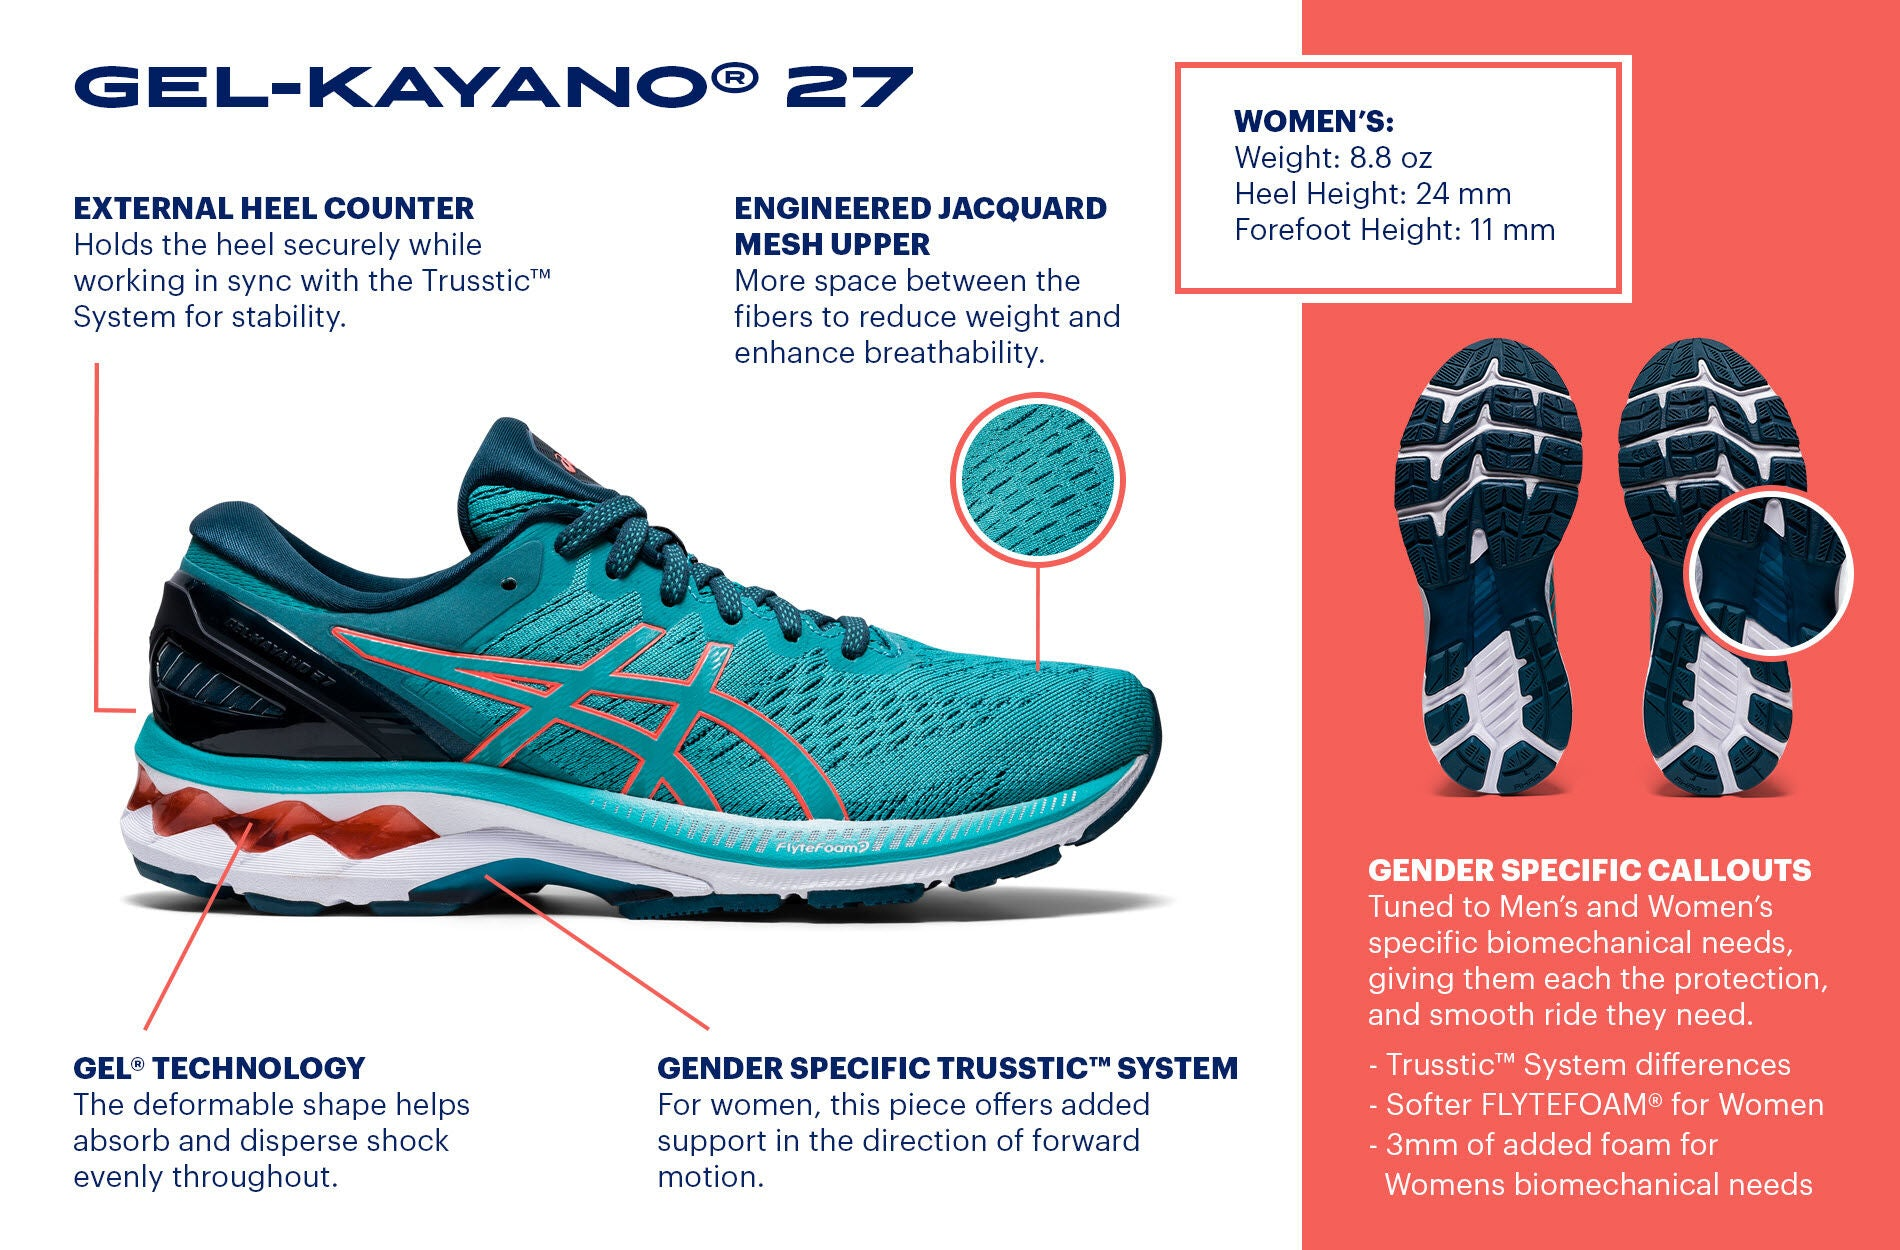 GEL-KAYANO 27 WOMEN (TECHNO CYAN/SUNRISE) - Asics